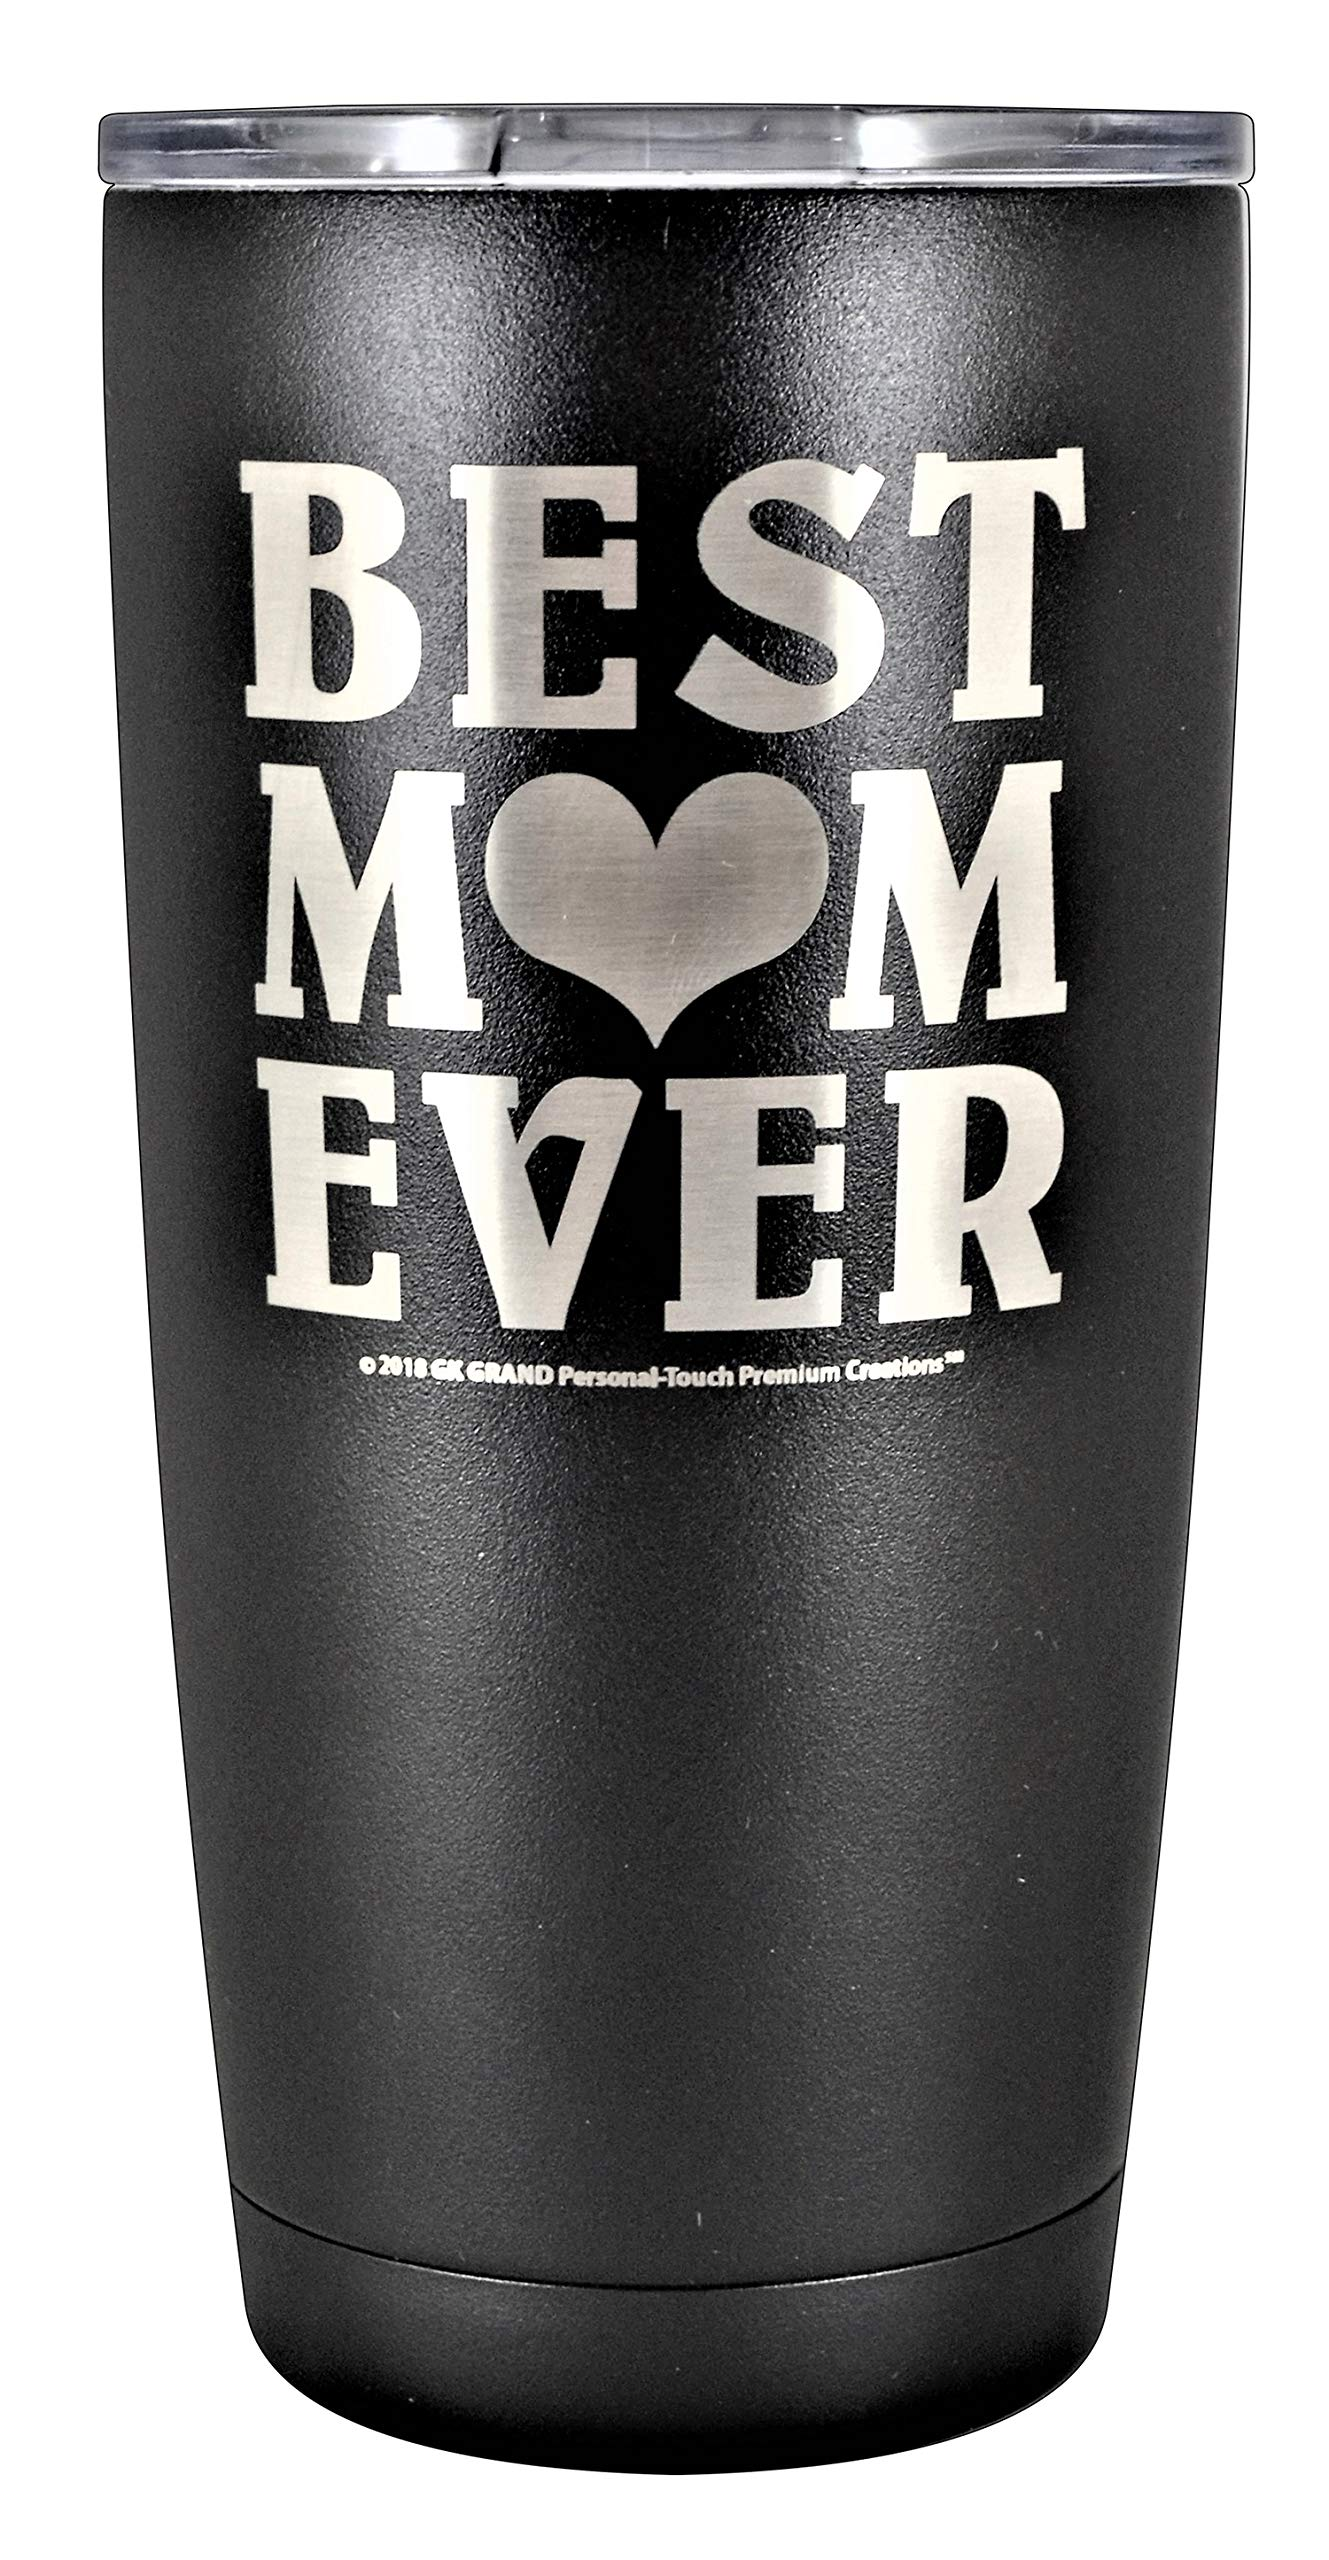 """GIFT MOM – """"BEST MOM EVER"""" GK Grand Personal-Touch Premium Creations Brand Engraved Stainless Steel Vacuum Insulated Tumbler 20oz Travel Coffee Mug Hot Cold Drink Christmas Birthday Mothers Day"""